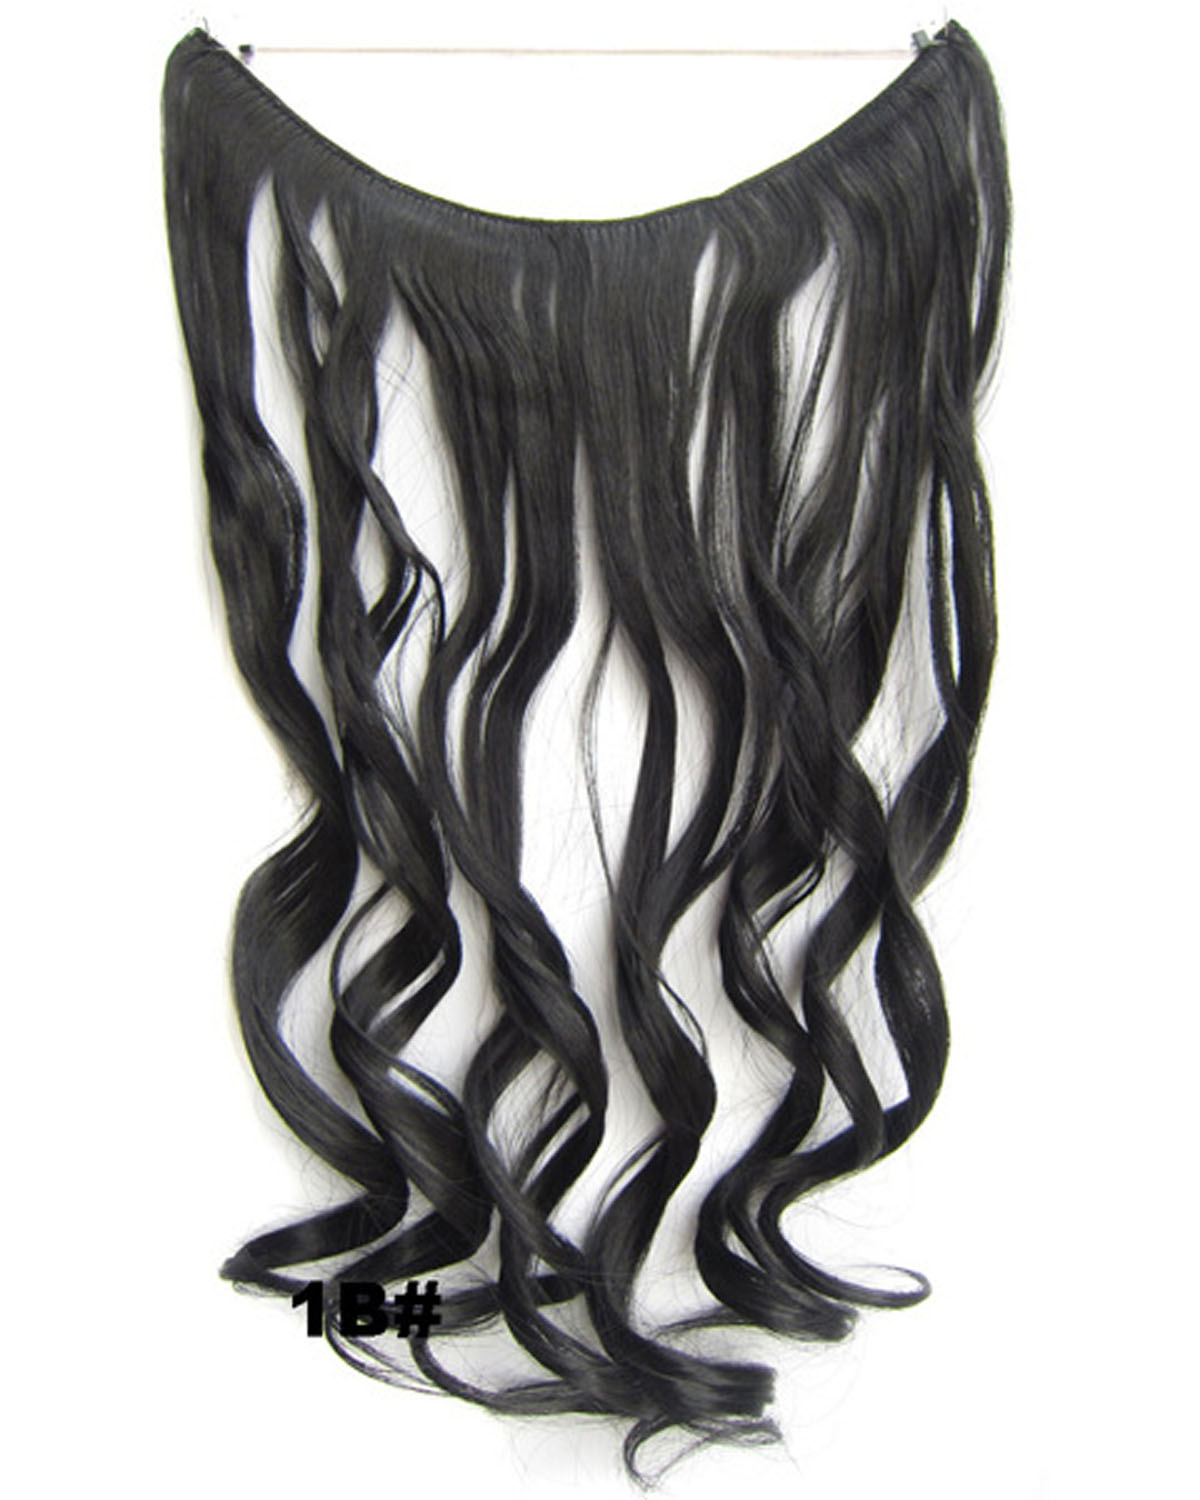 22 Inch Fine Curly and Long One Piece Miracle Wire Flip in Synthetic Hair Extension1B#